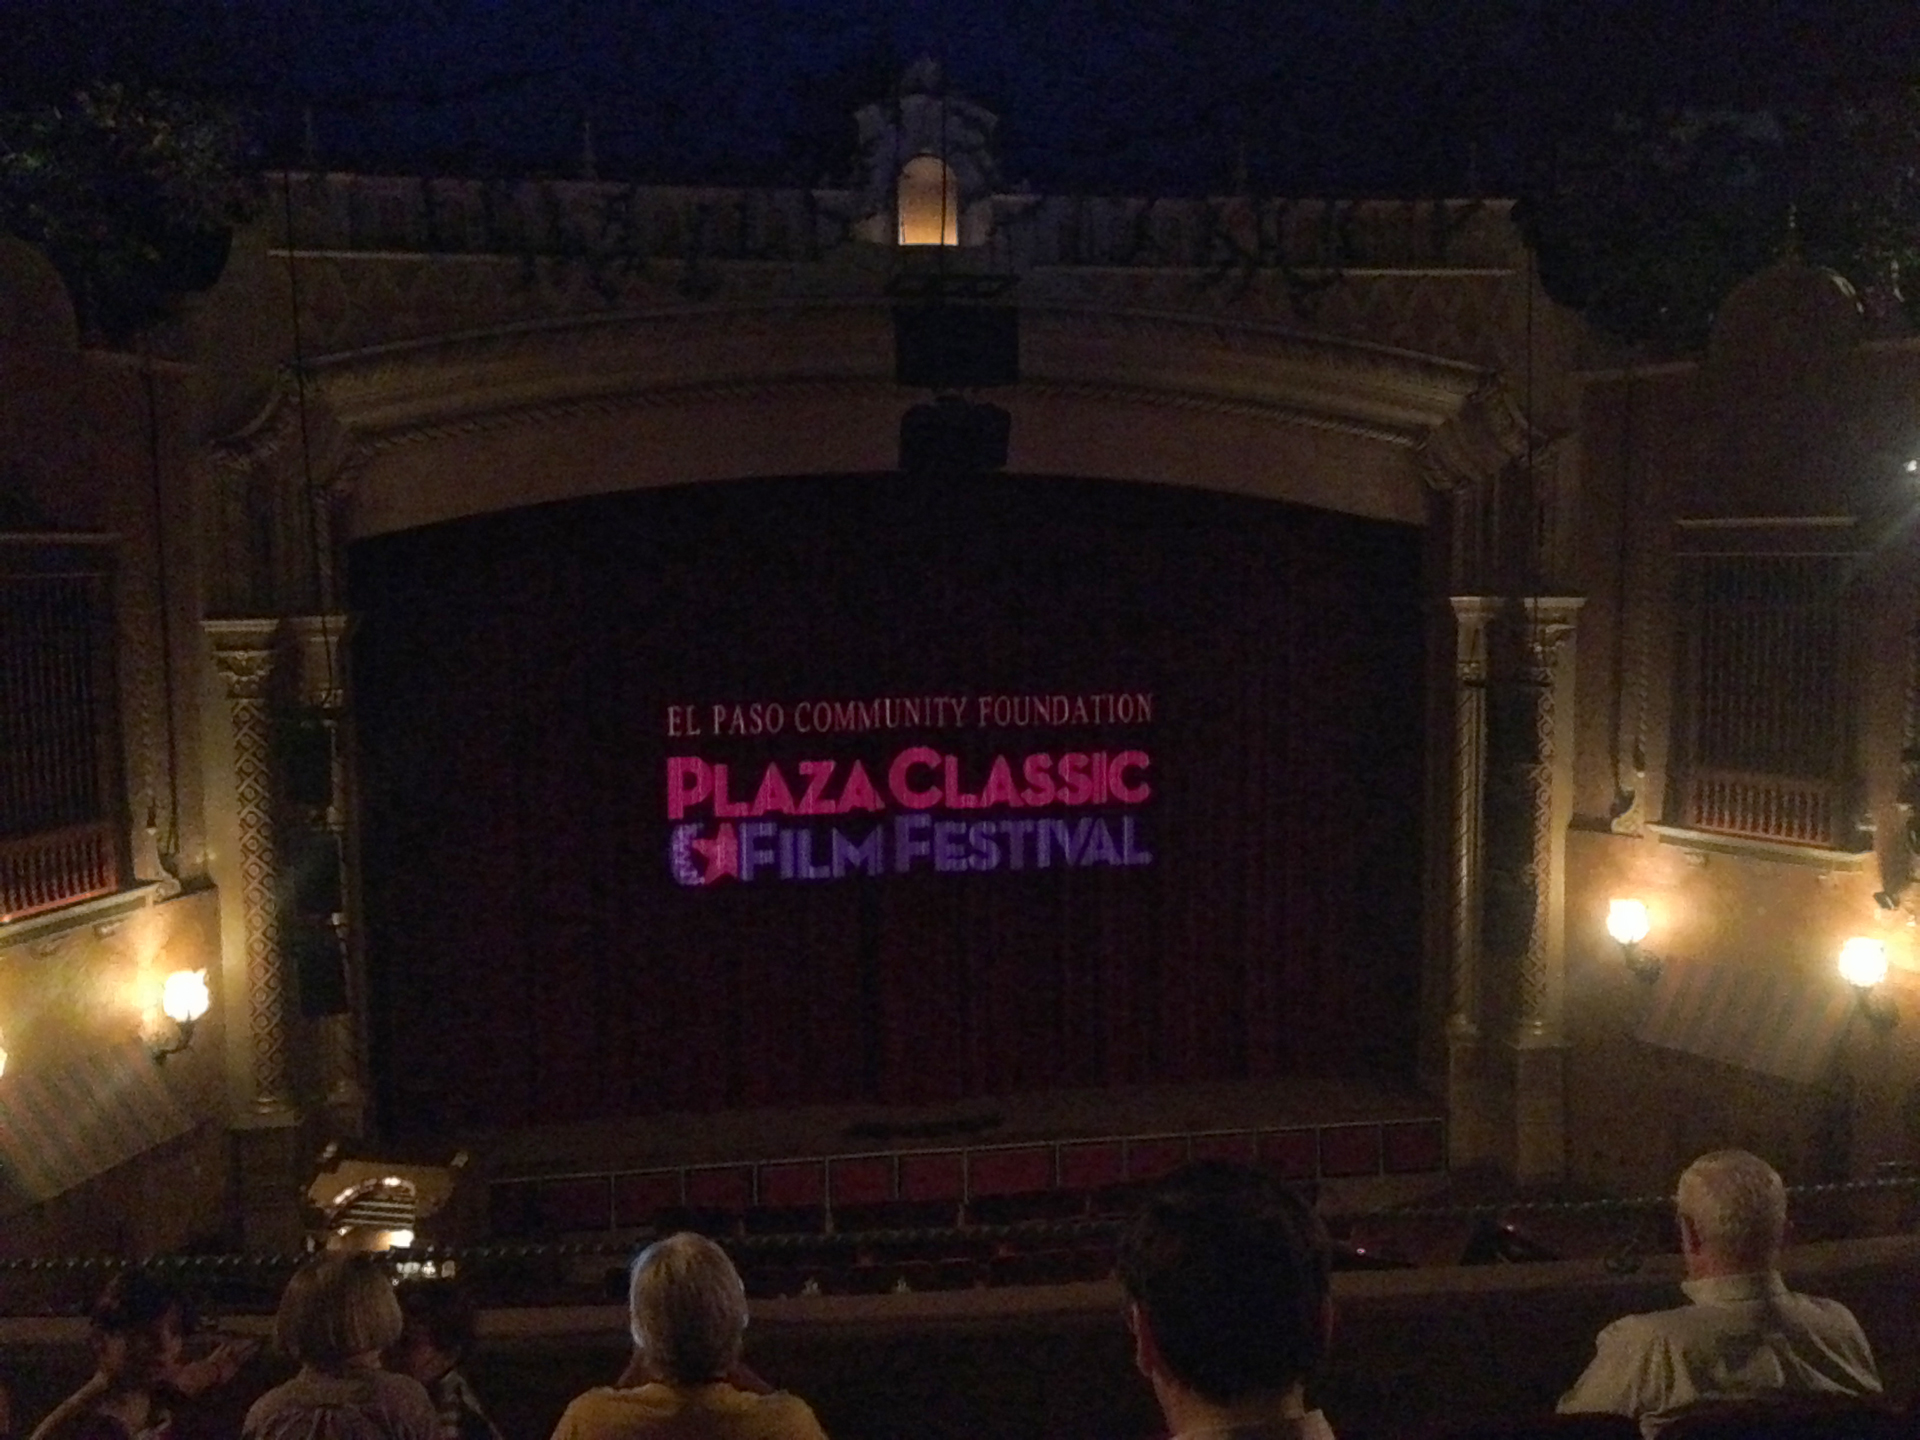 plaza-theater-movie-screen-curtain